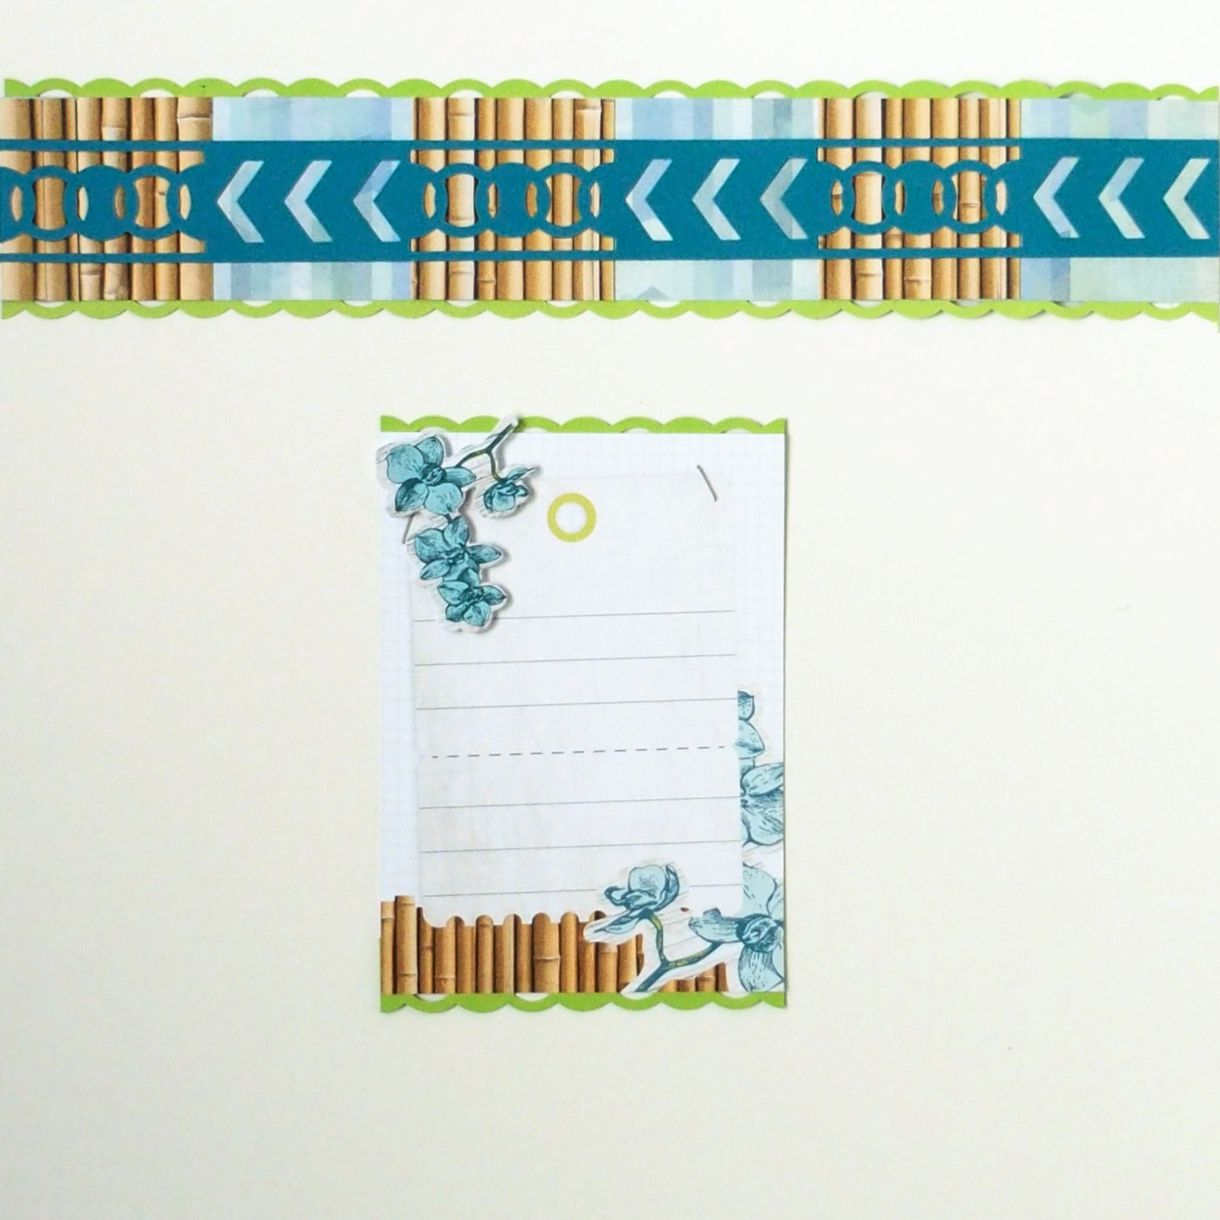 'Cool Serenity' border and matching journaling box by Creative Memories. www.creativememories.com/user/dayna